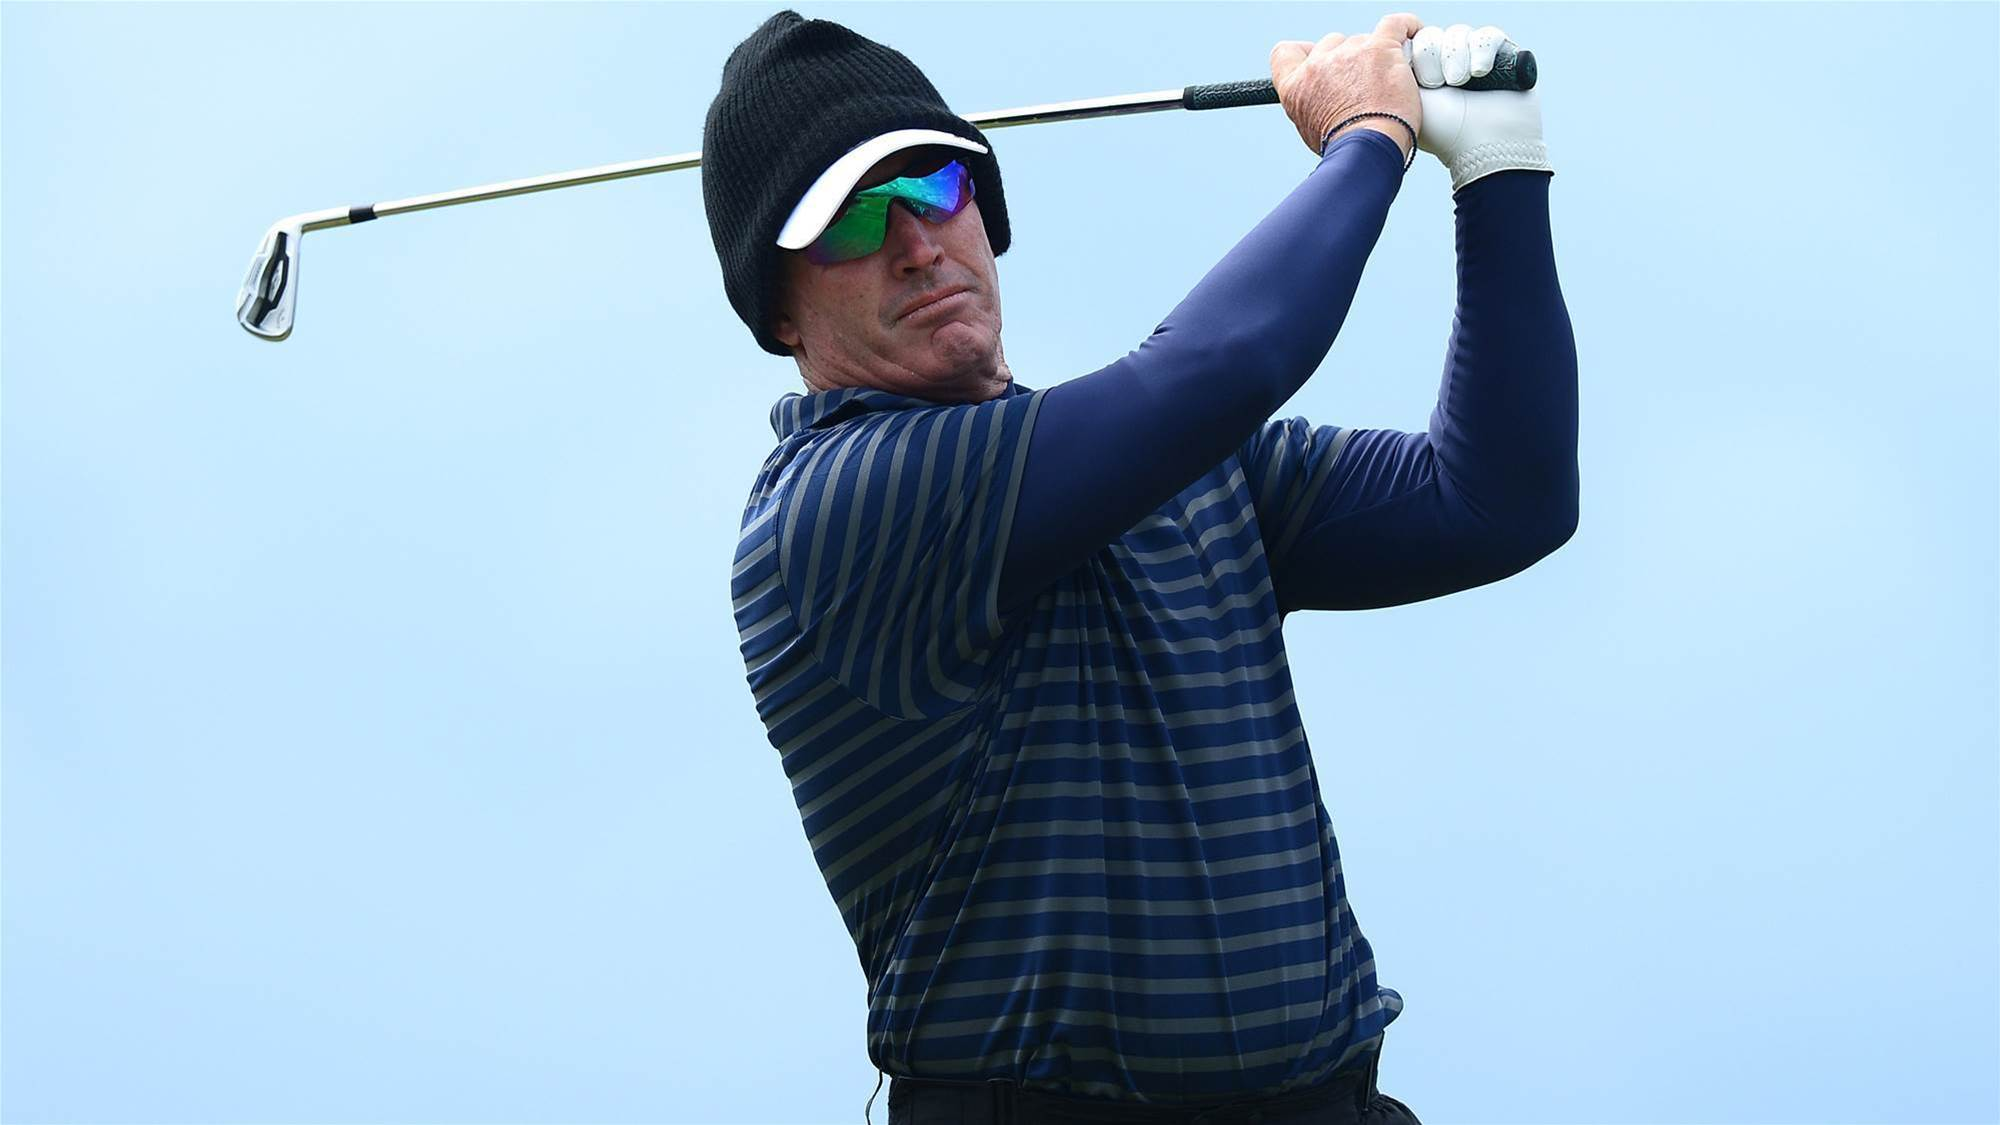 SENIOR OPEN: Lonard impresses with third place on debut